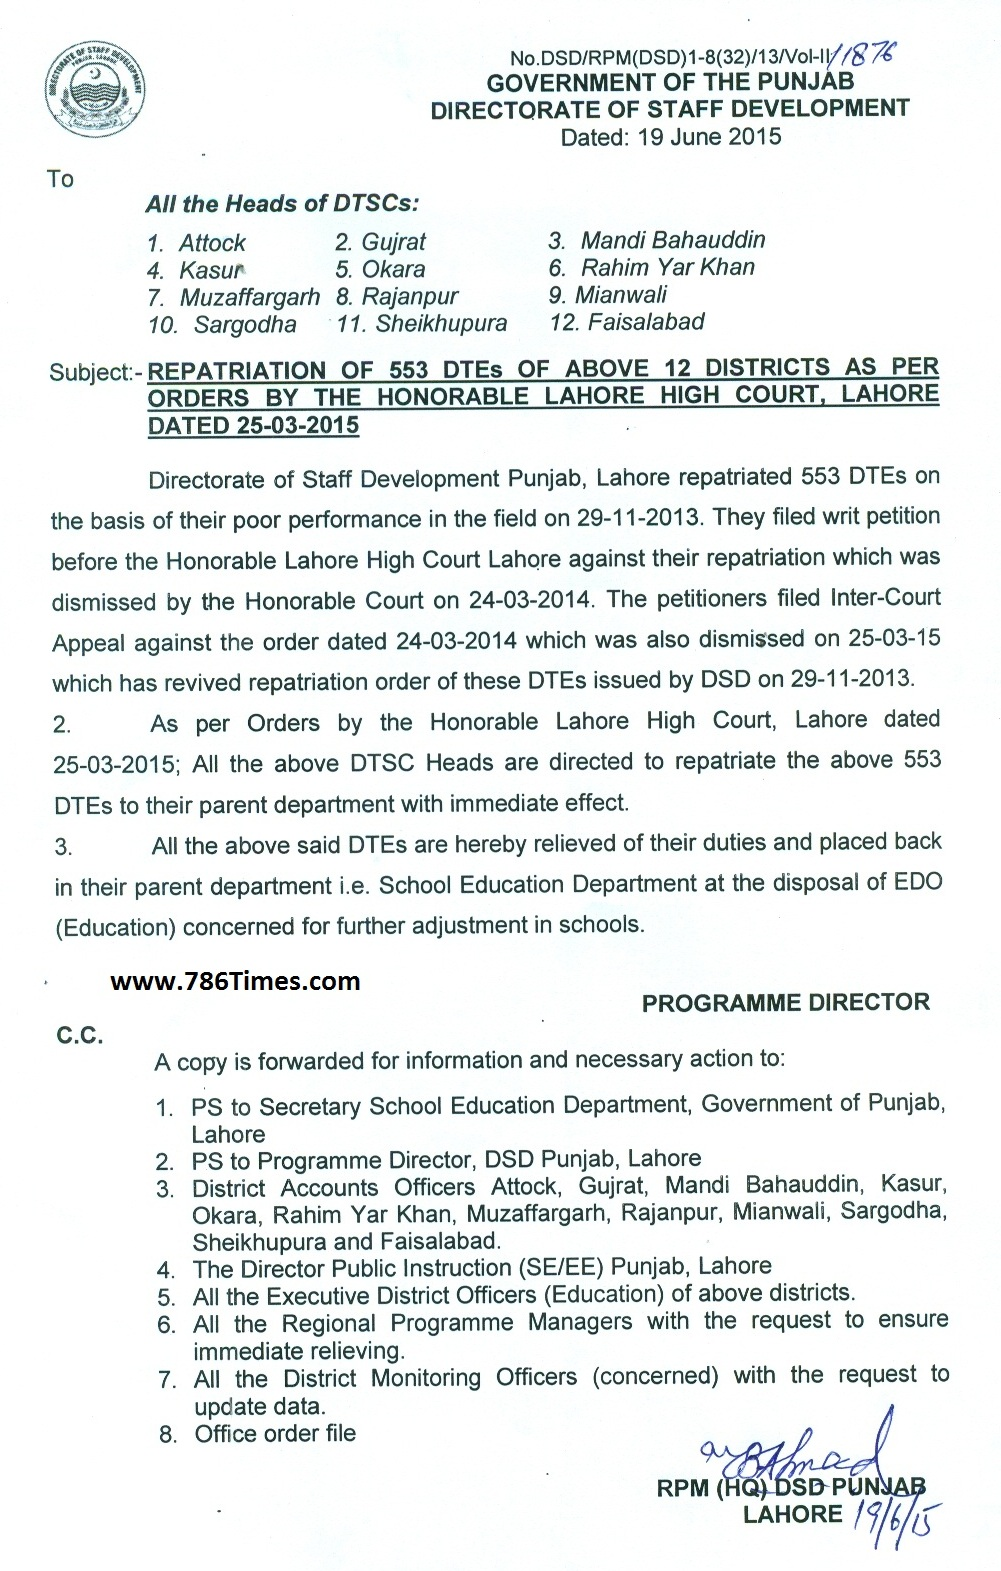 Repatriation of 553 DTE's  of 12 Districts as per orders by the honorable Lahore High Court dated 25 March 2015 court  of